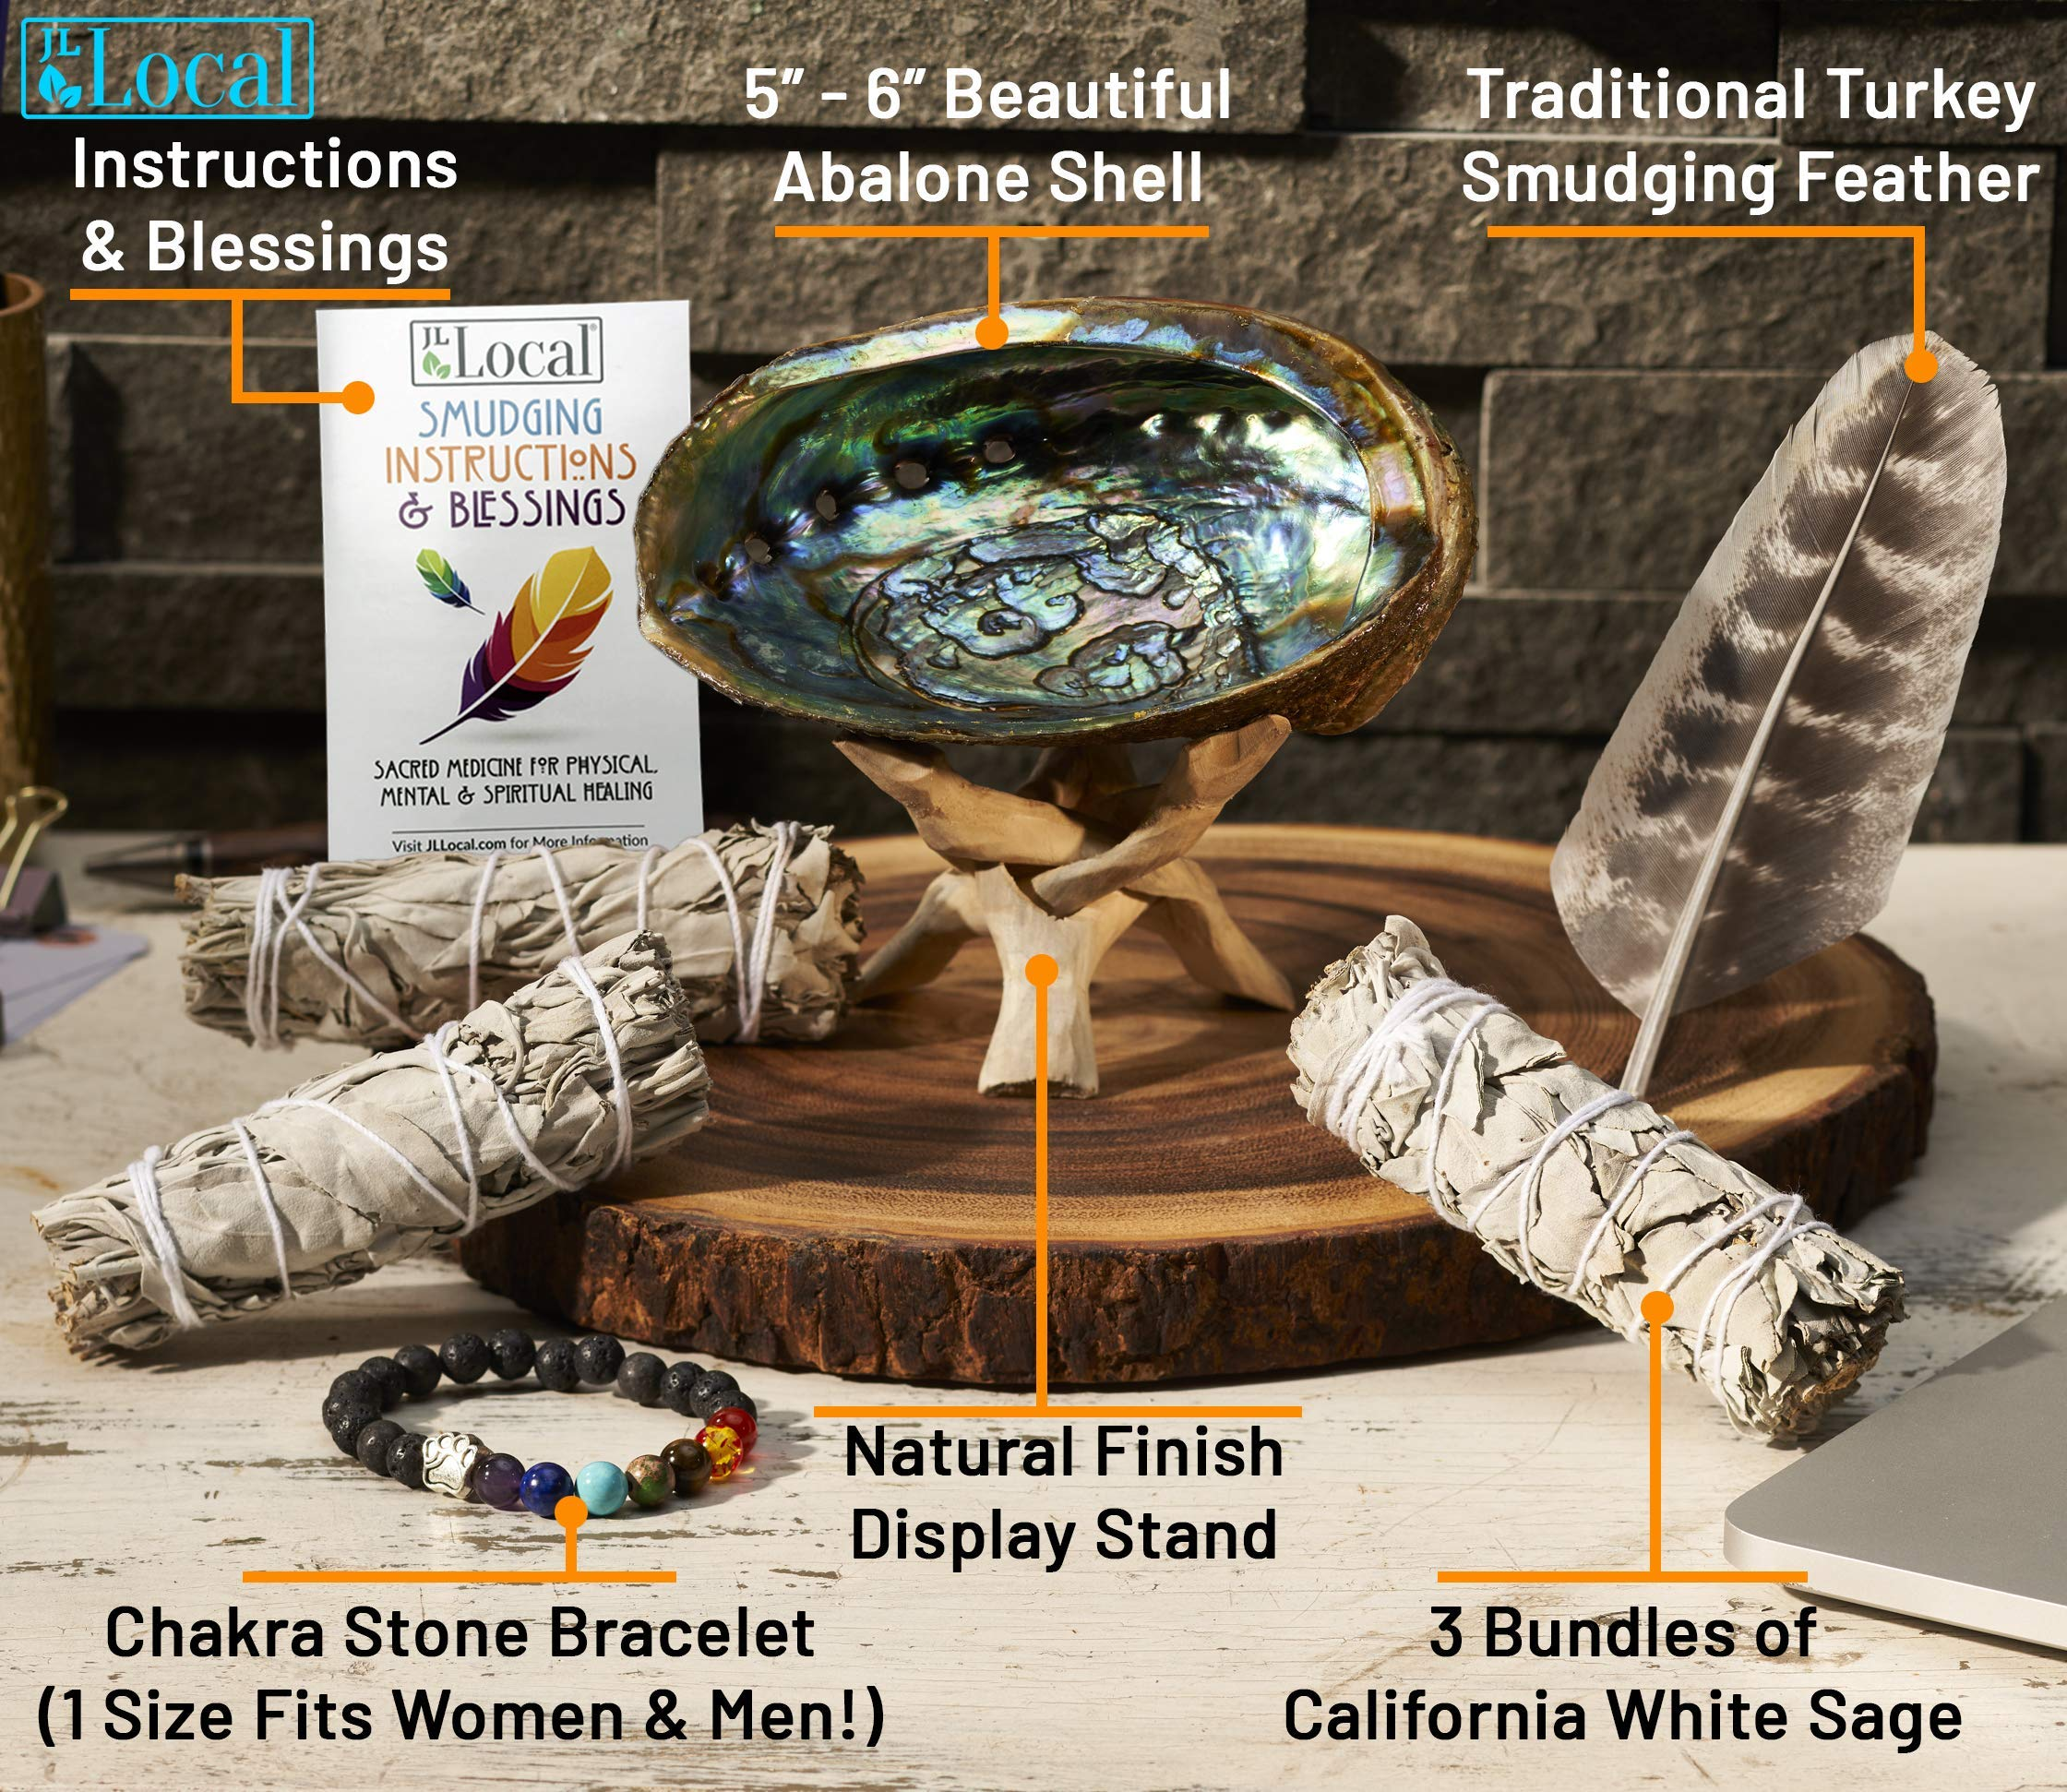 JL Local 3 White Sage Smudge Gift Kit - Abalone Shell, Feather, Stand, Instructions & More - Smudging, Cleansing, Healing & Stress Relief by JL Local (Image #2)